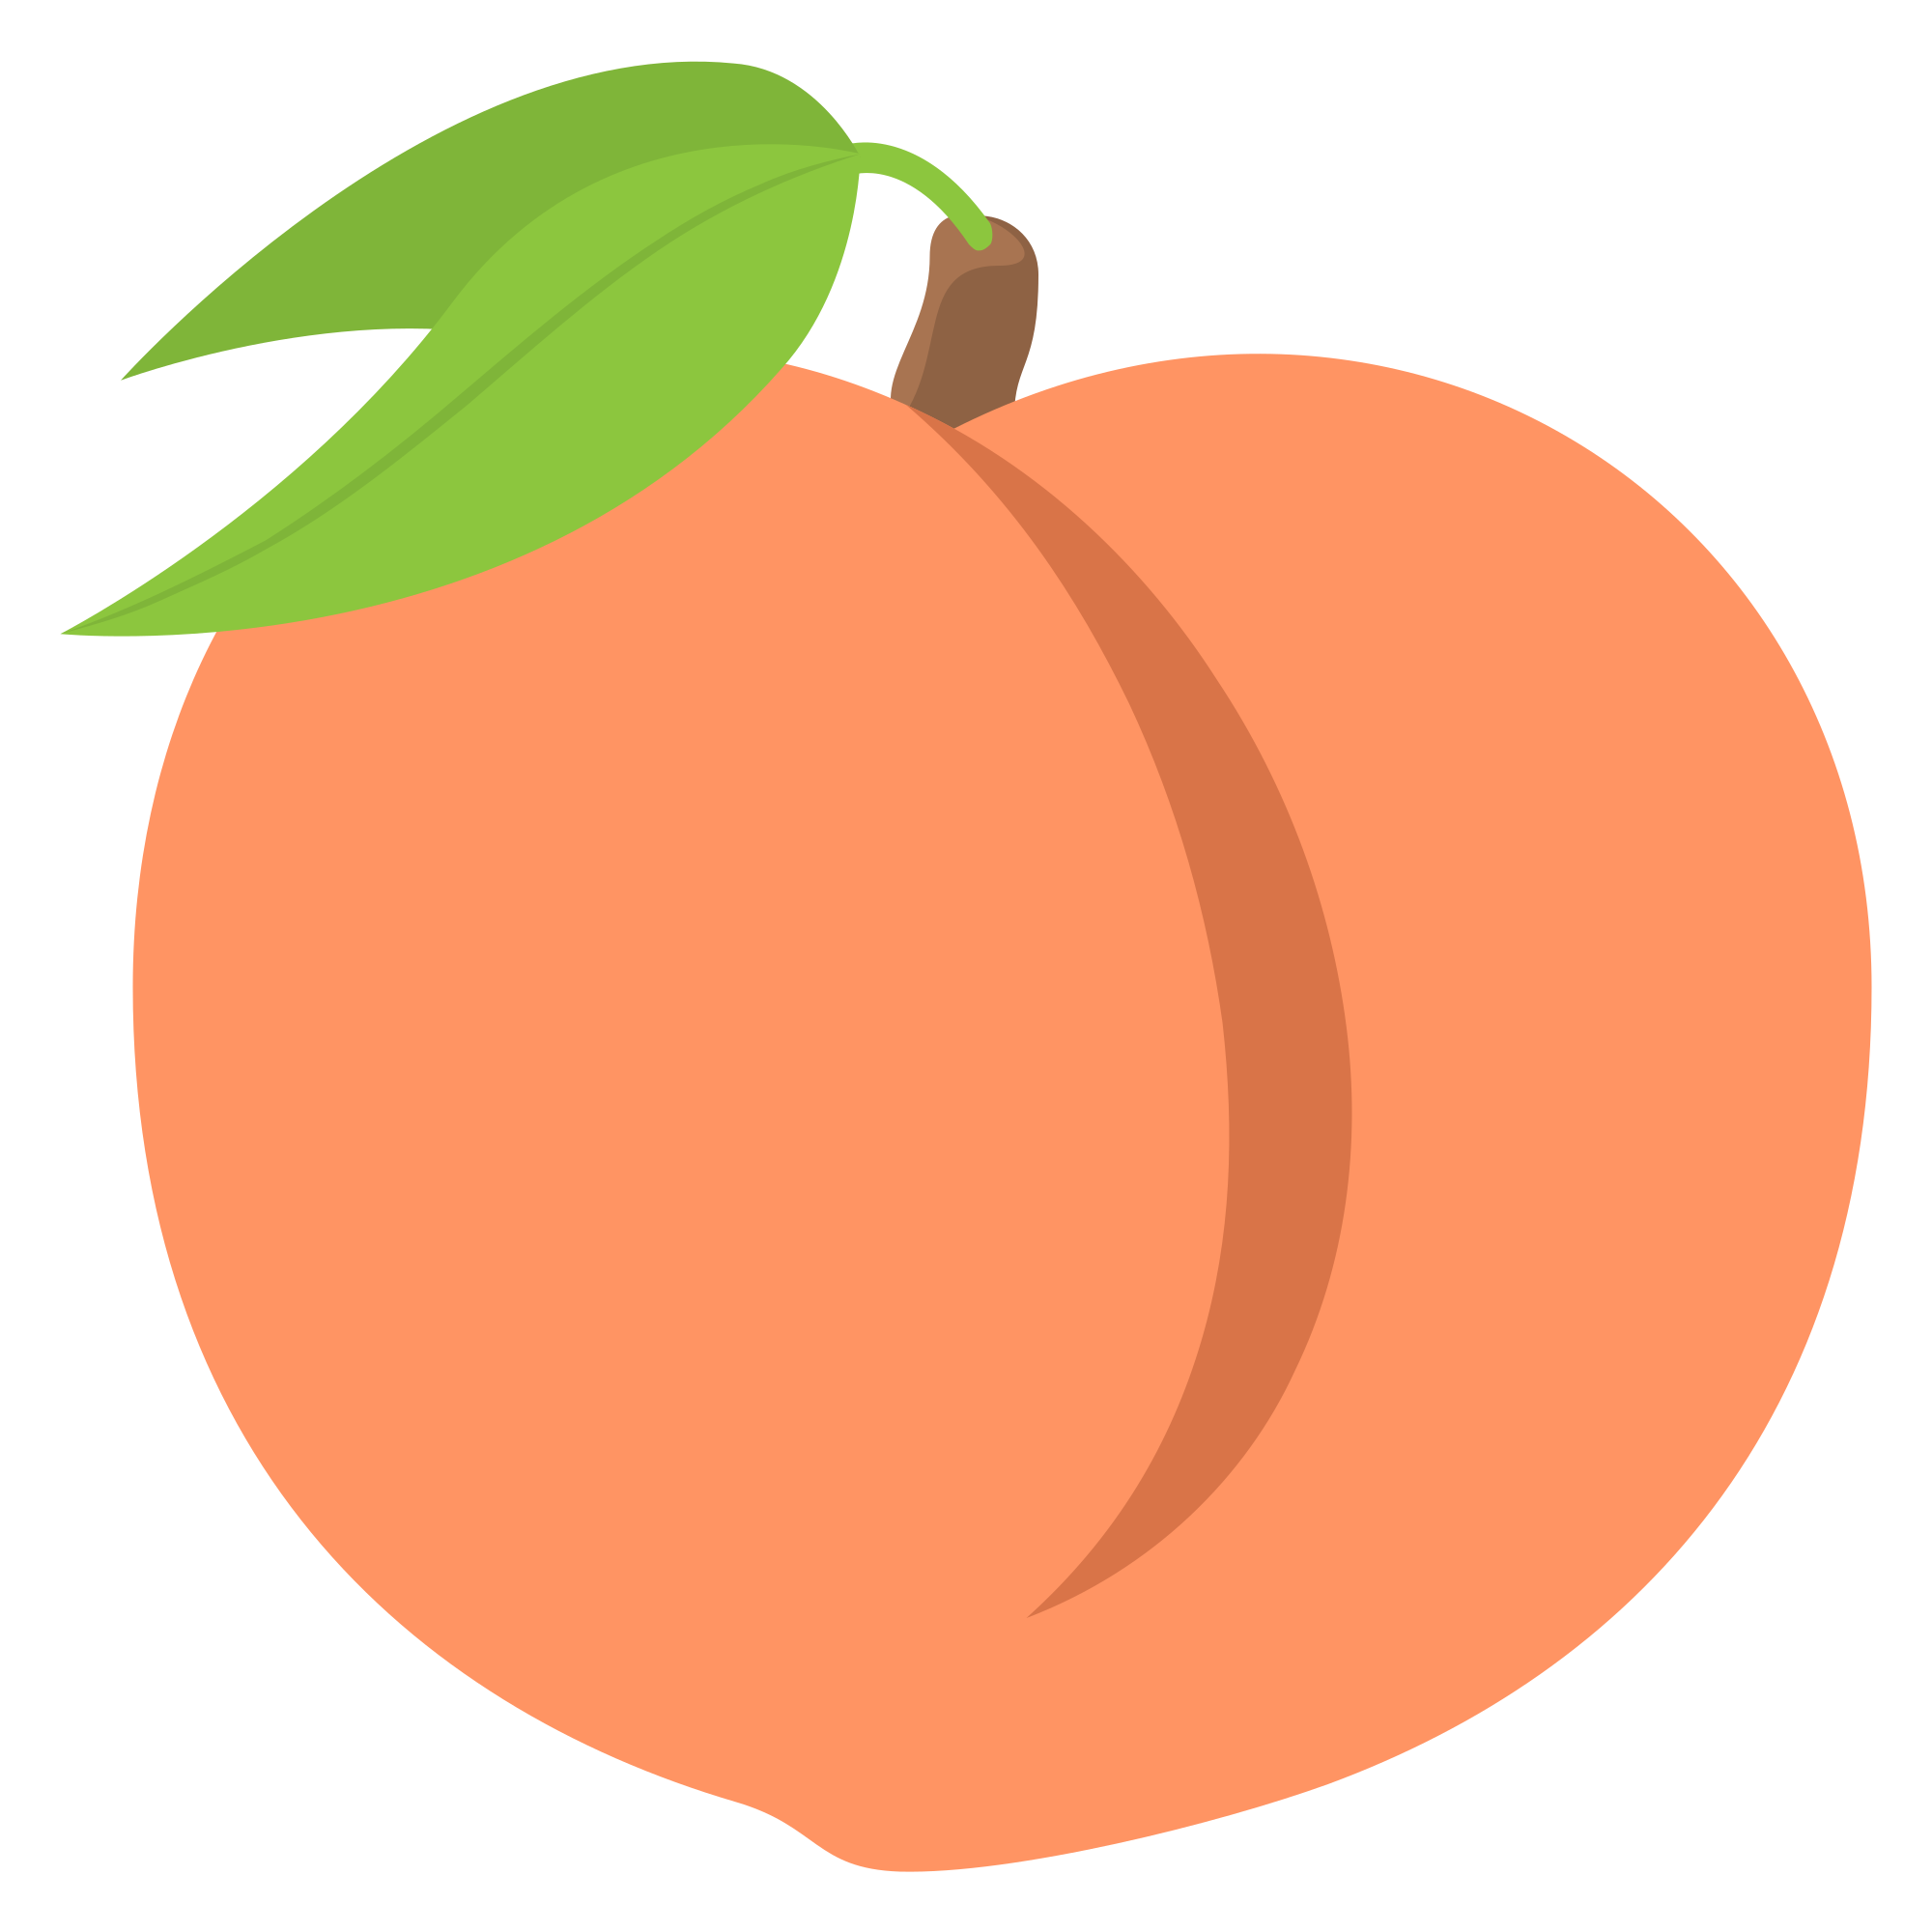 Peach emoji with crown clipart picture transparent Emoji clipart peach FREE for download on rpelm picture transparent